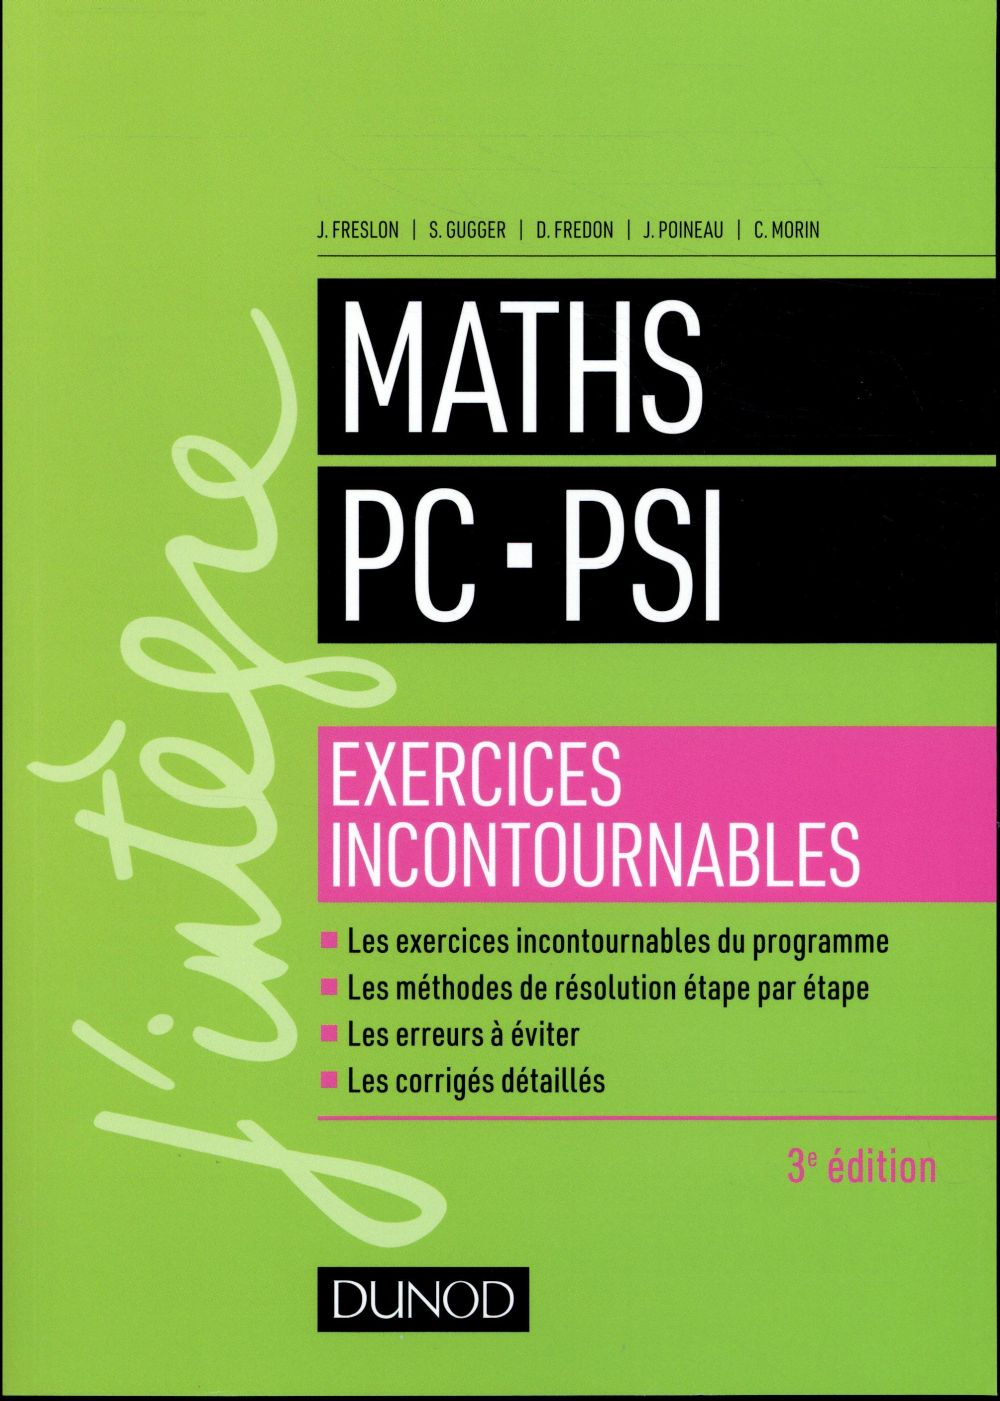 MATHS PC PSI   EXERCICES INCONTOURNABLES   3ED.